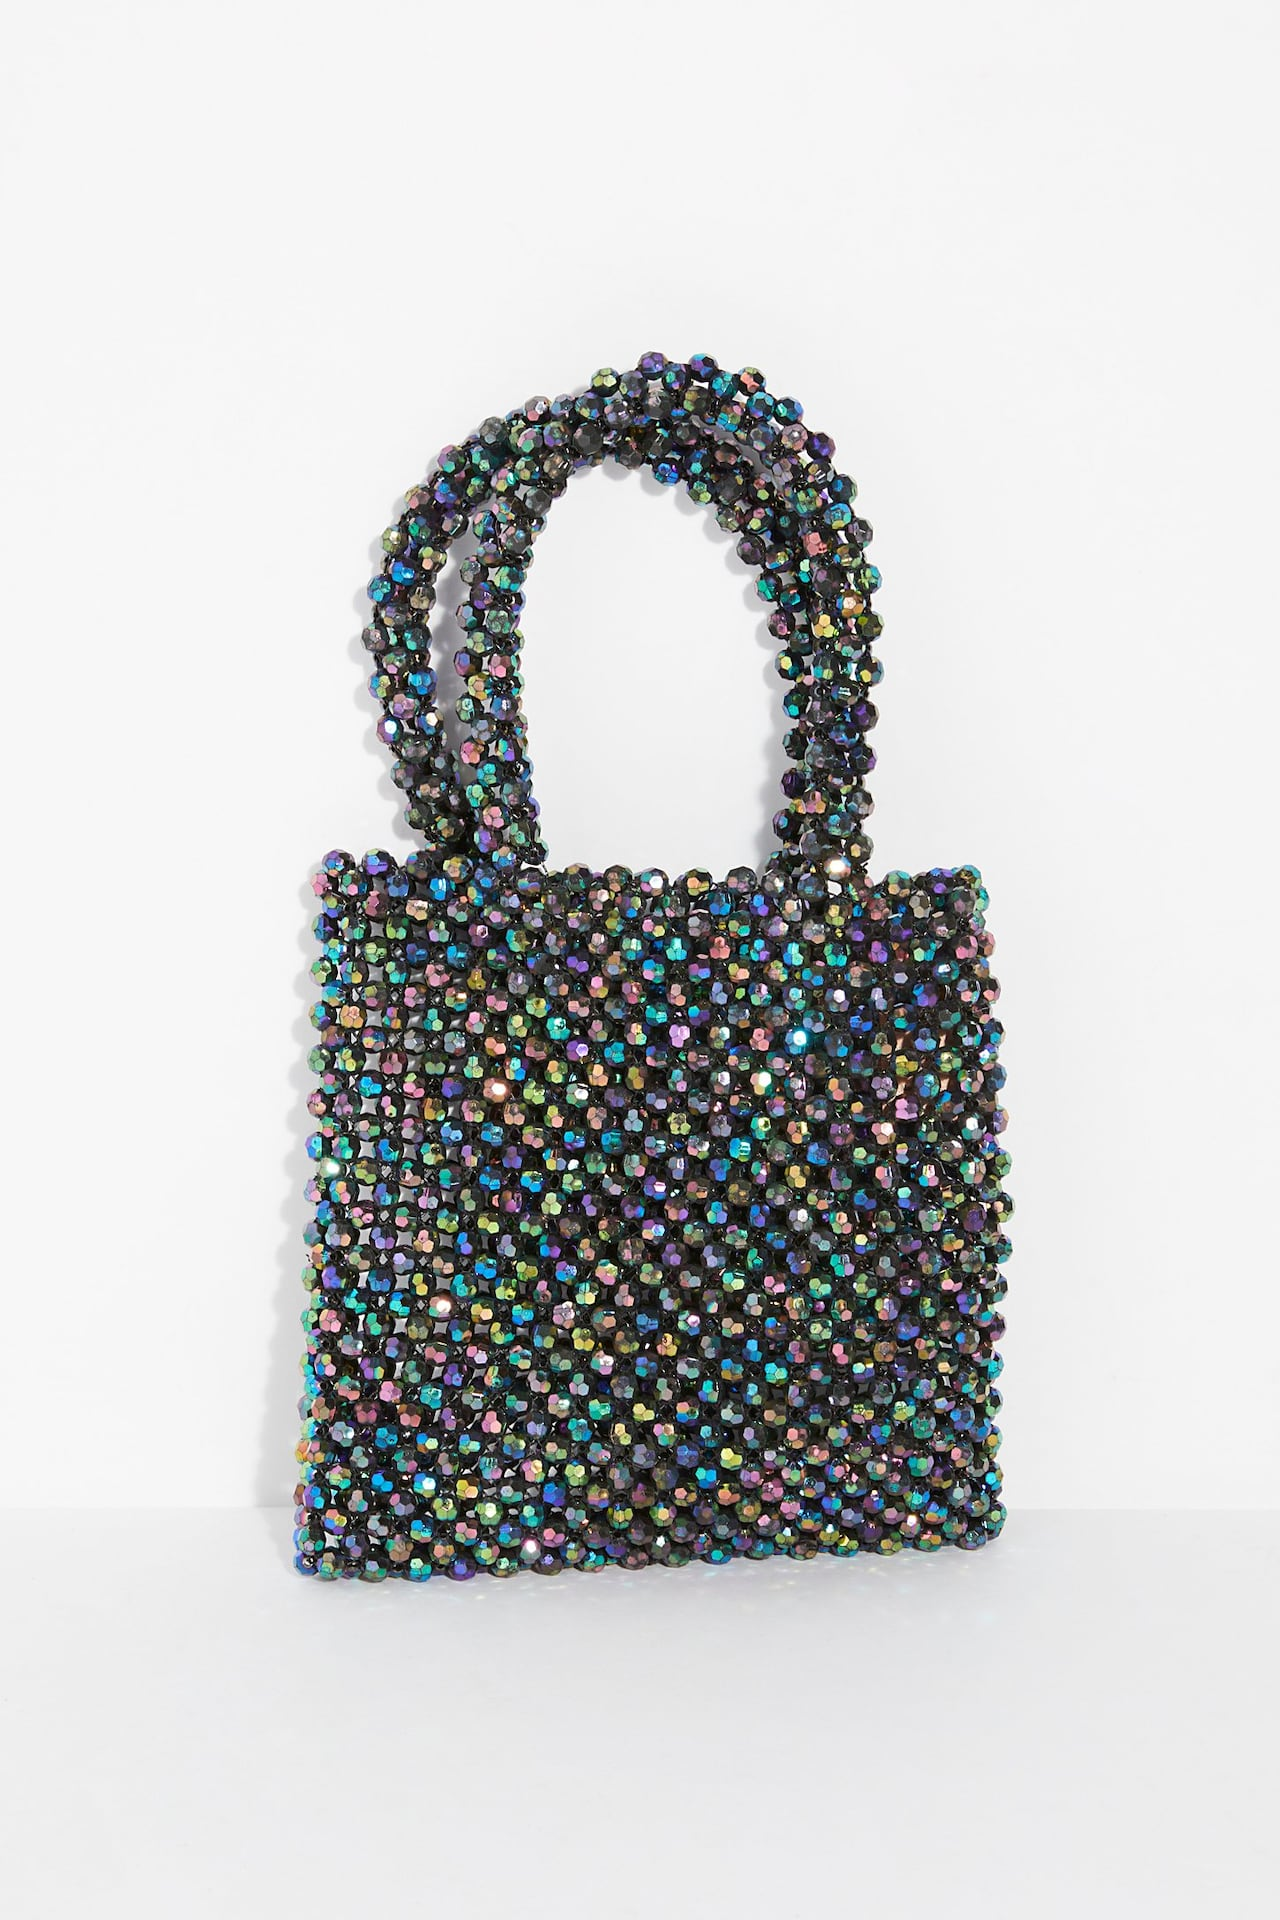 bf687821f9 Beaded bags: A little something extra for the very extra season ahead | CBC  Life